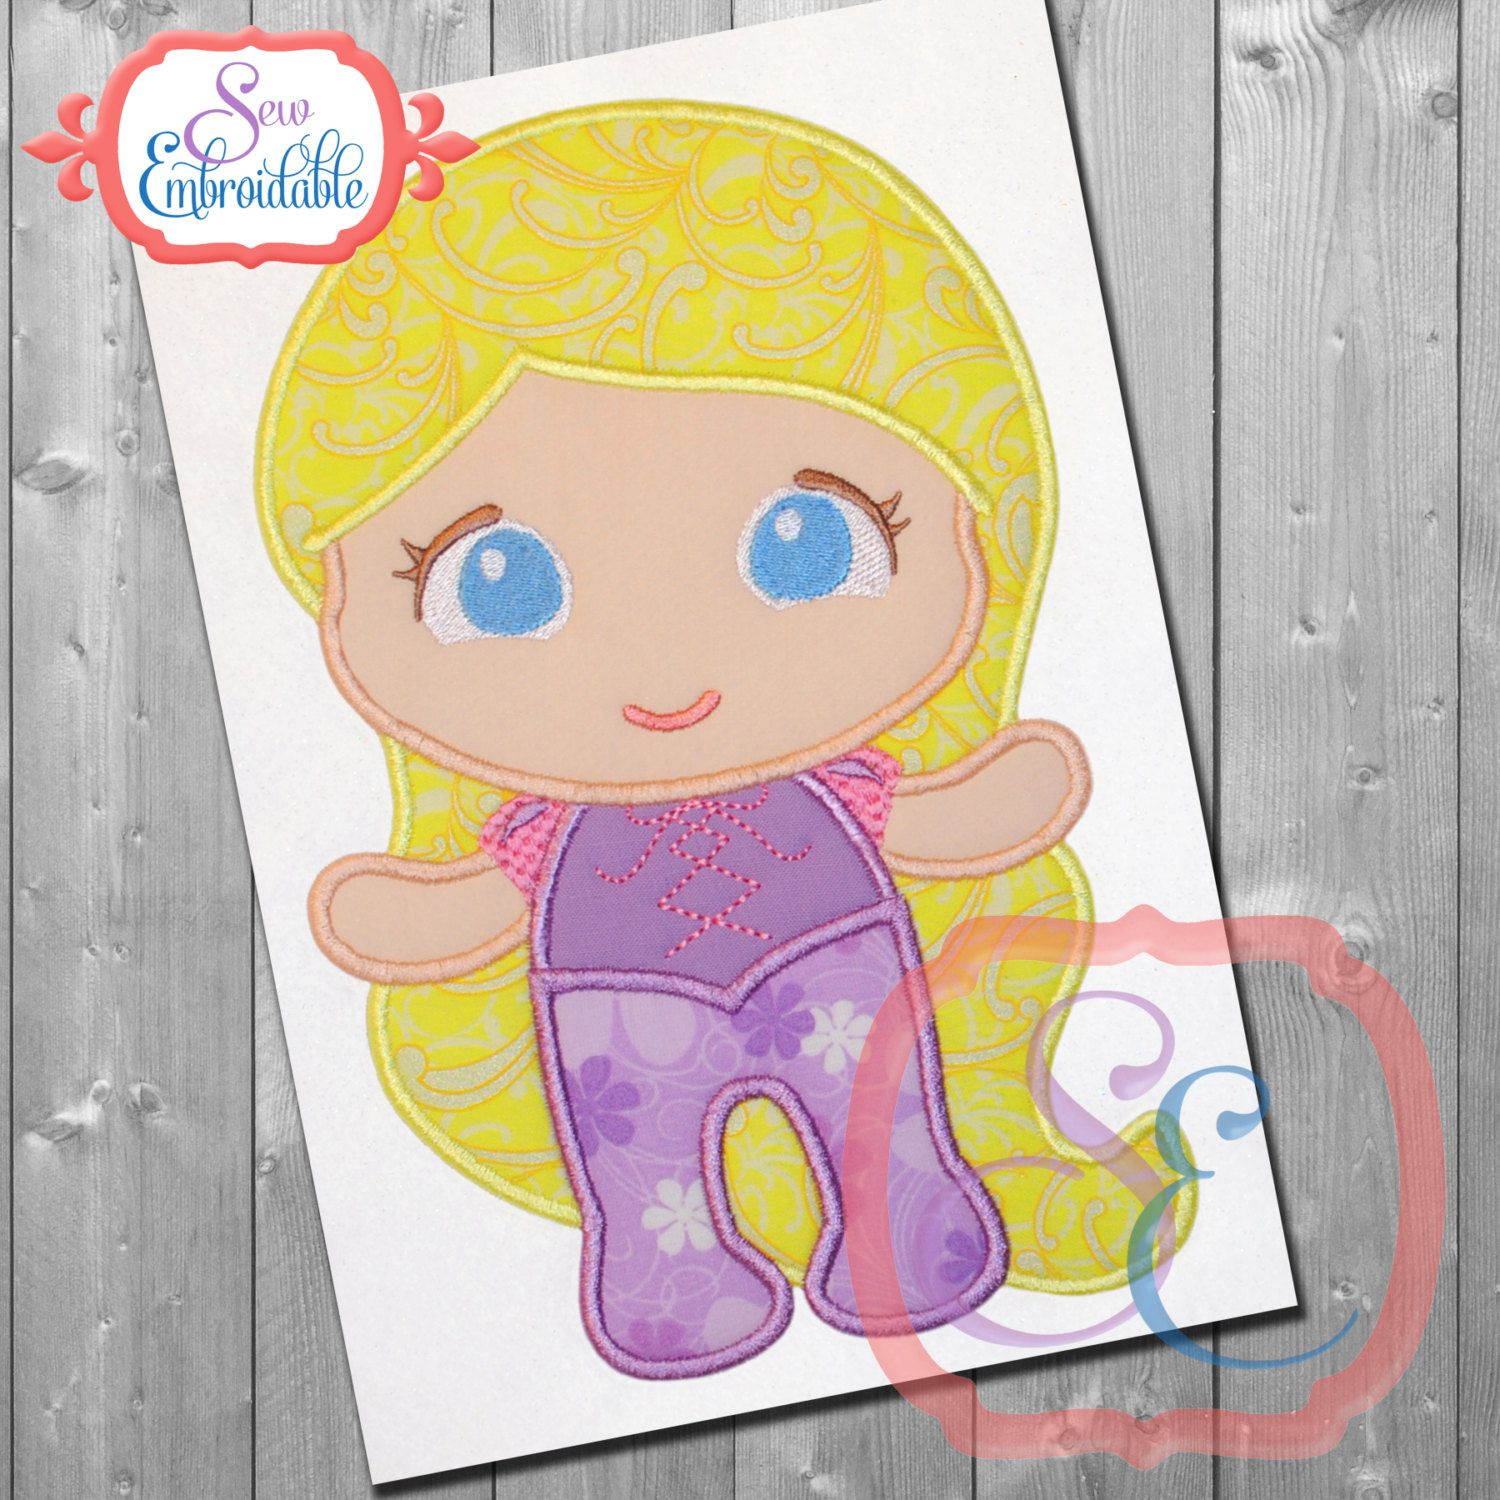 BABY Princess 7 Applique Design For Machine Embroidery by